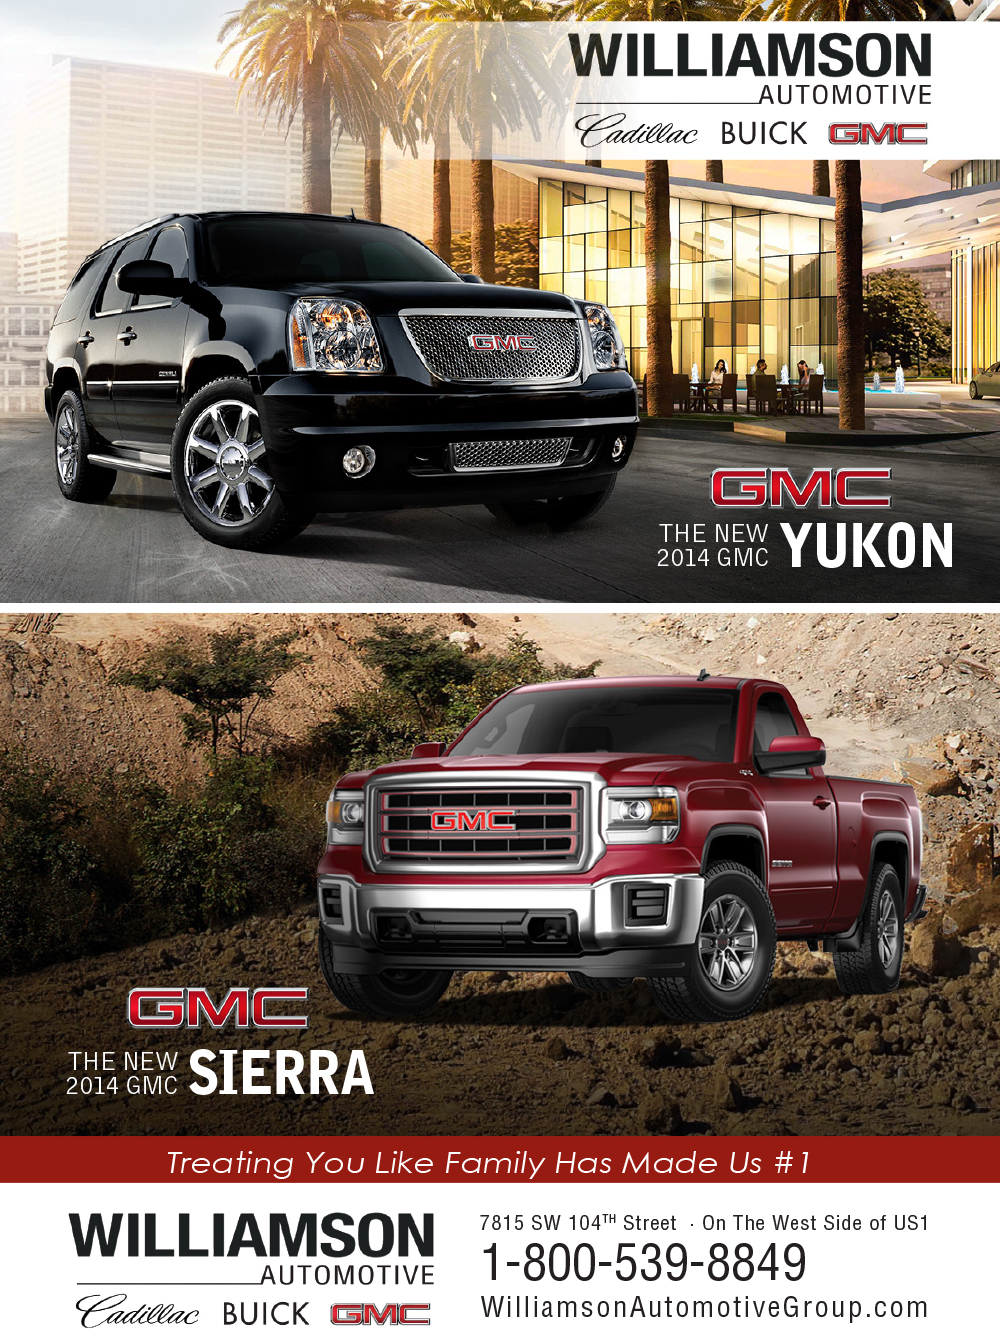 Williamson-Automotive-2014-GMC-Yukon-2014-GMC-Sierra-Print-Ad